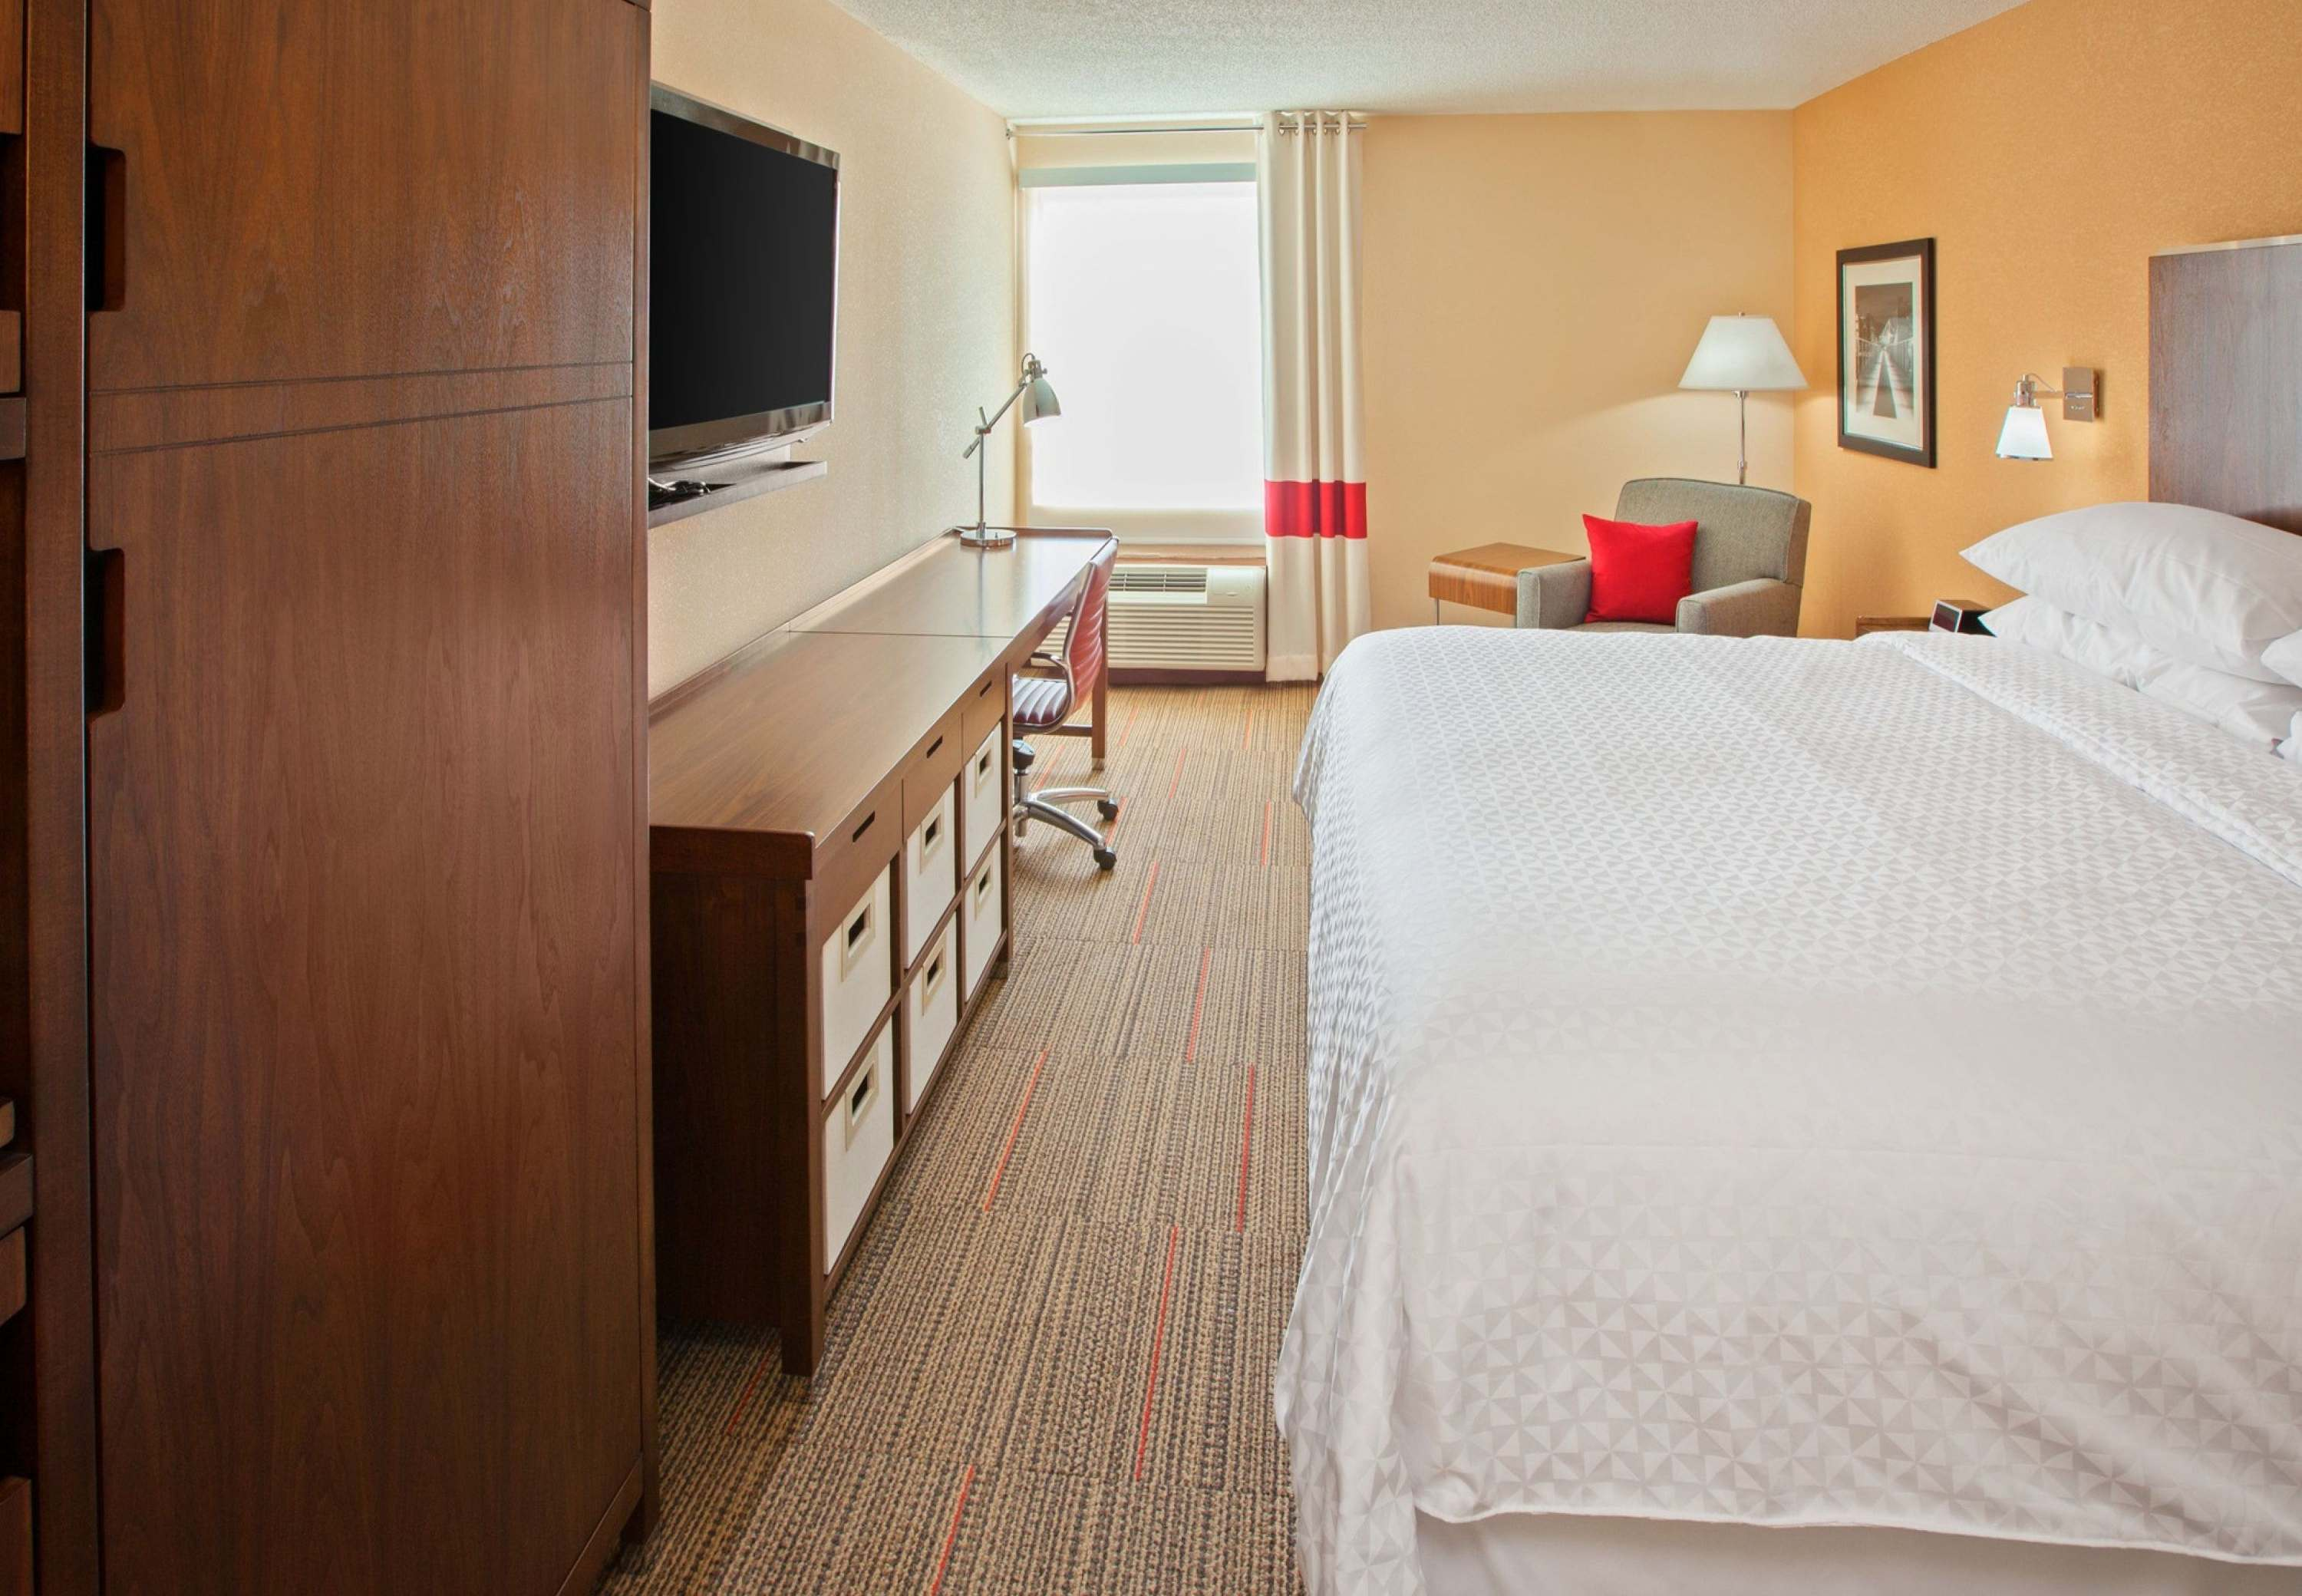 Fairfield Inn & Suites by Marriott Chattanooga image 3